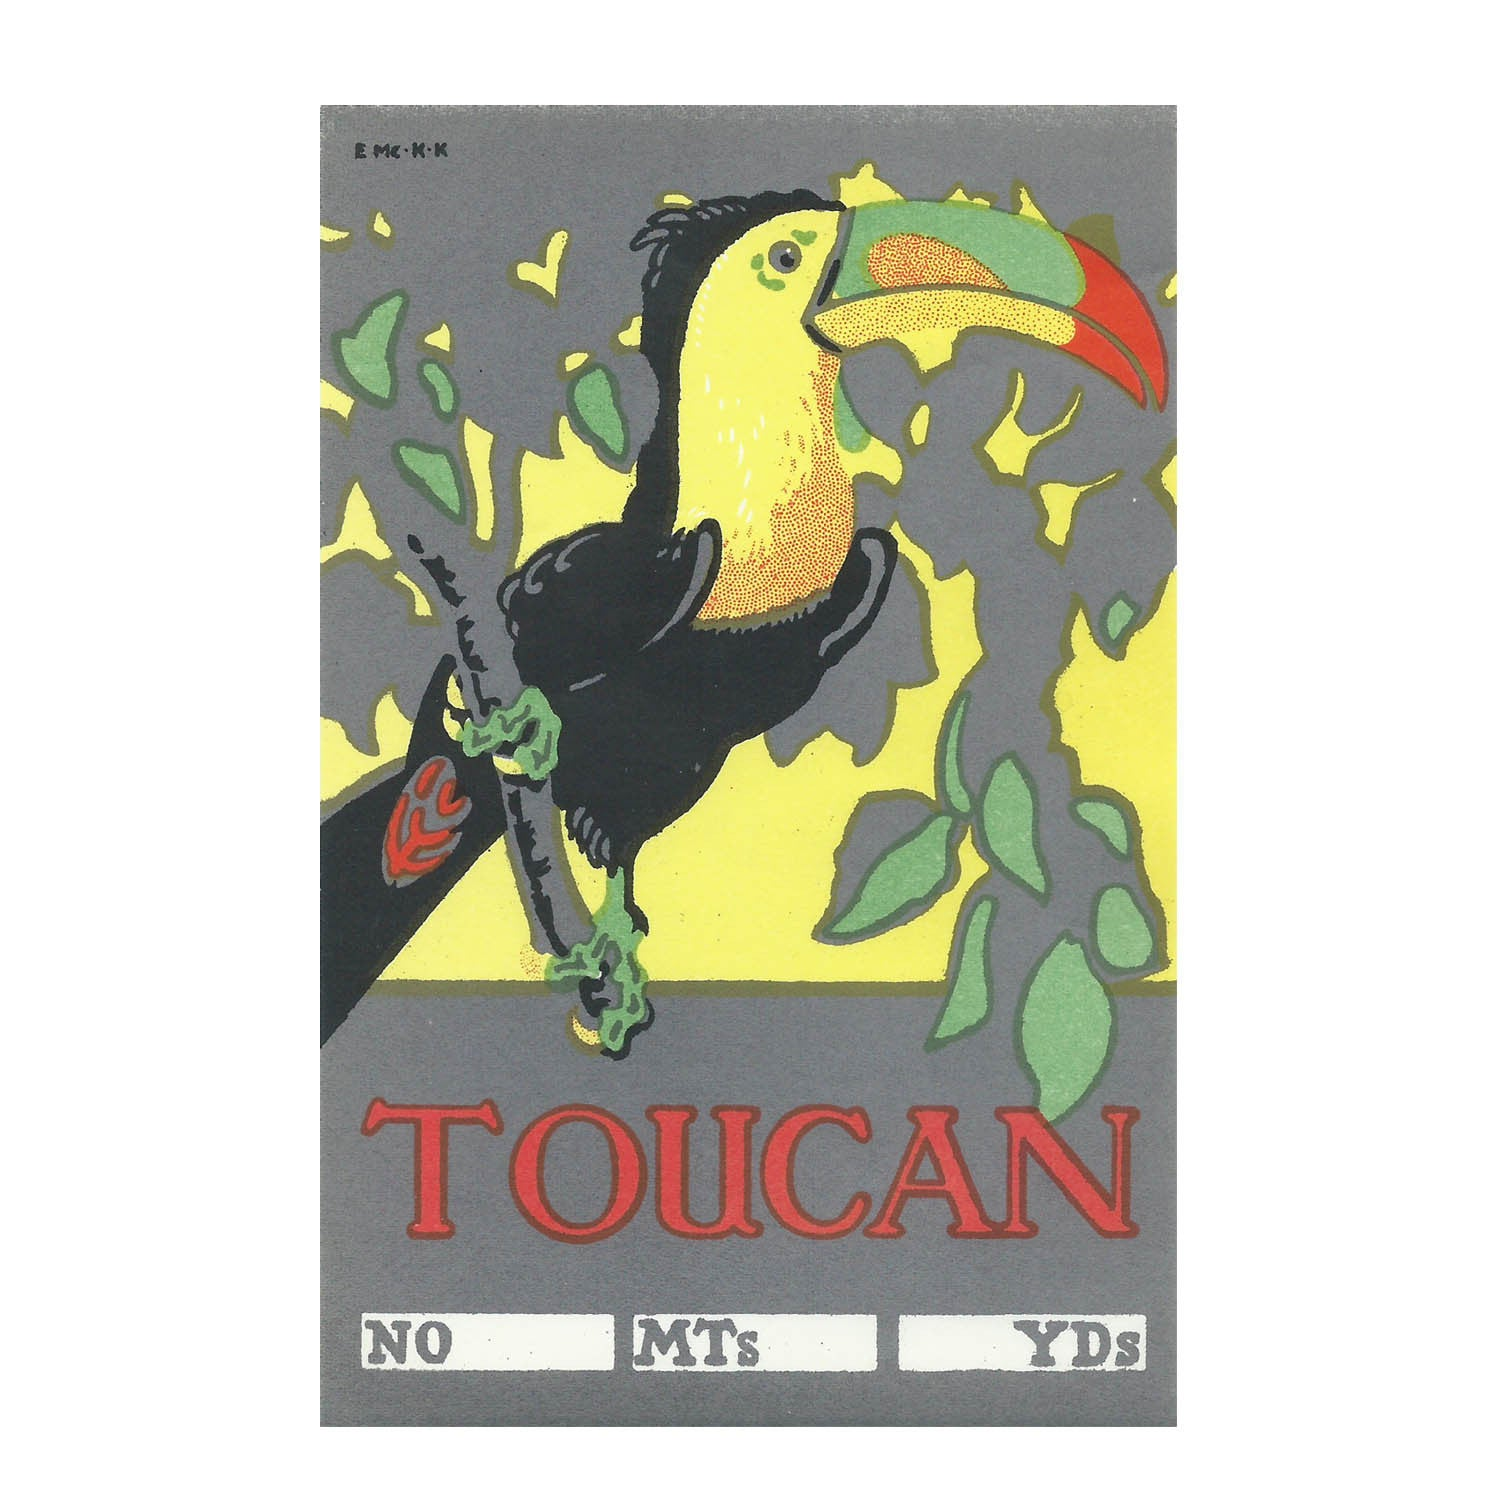 Cotton bale label (Toucan)